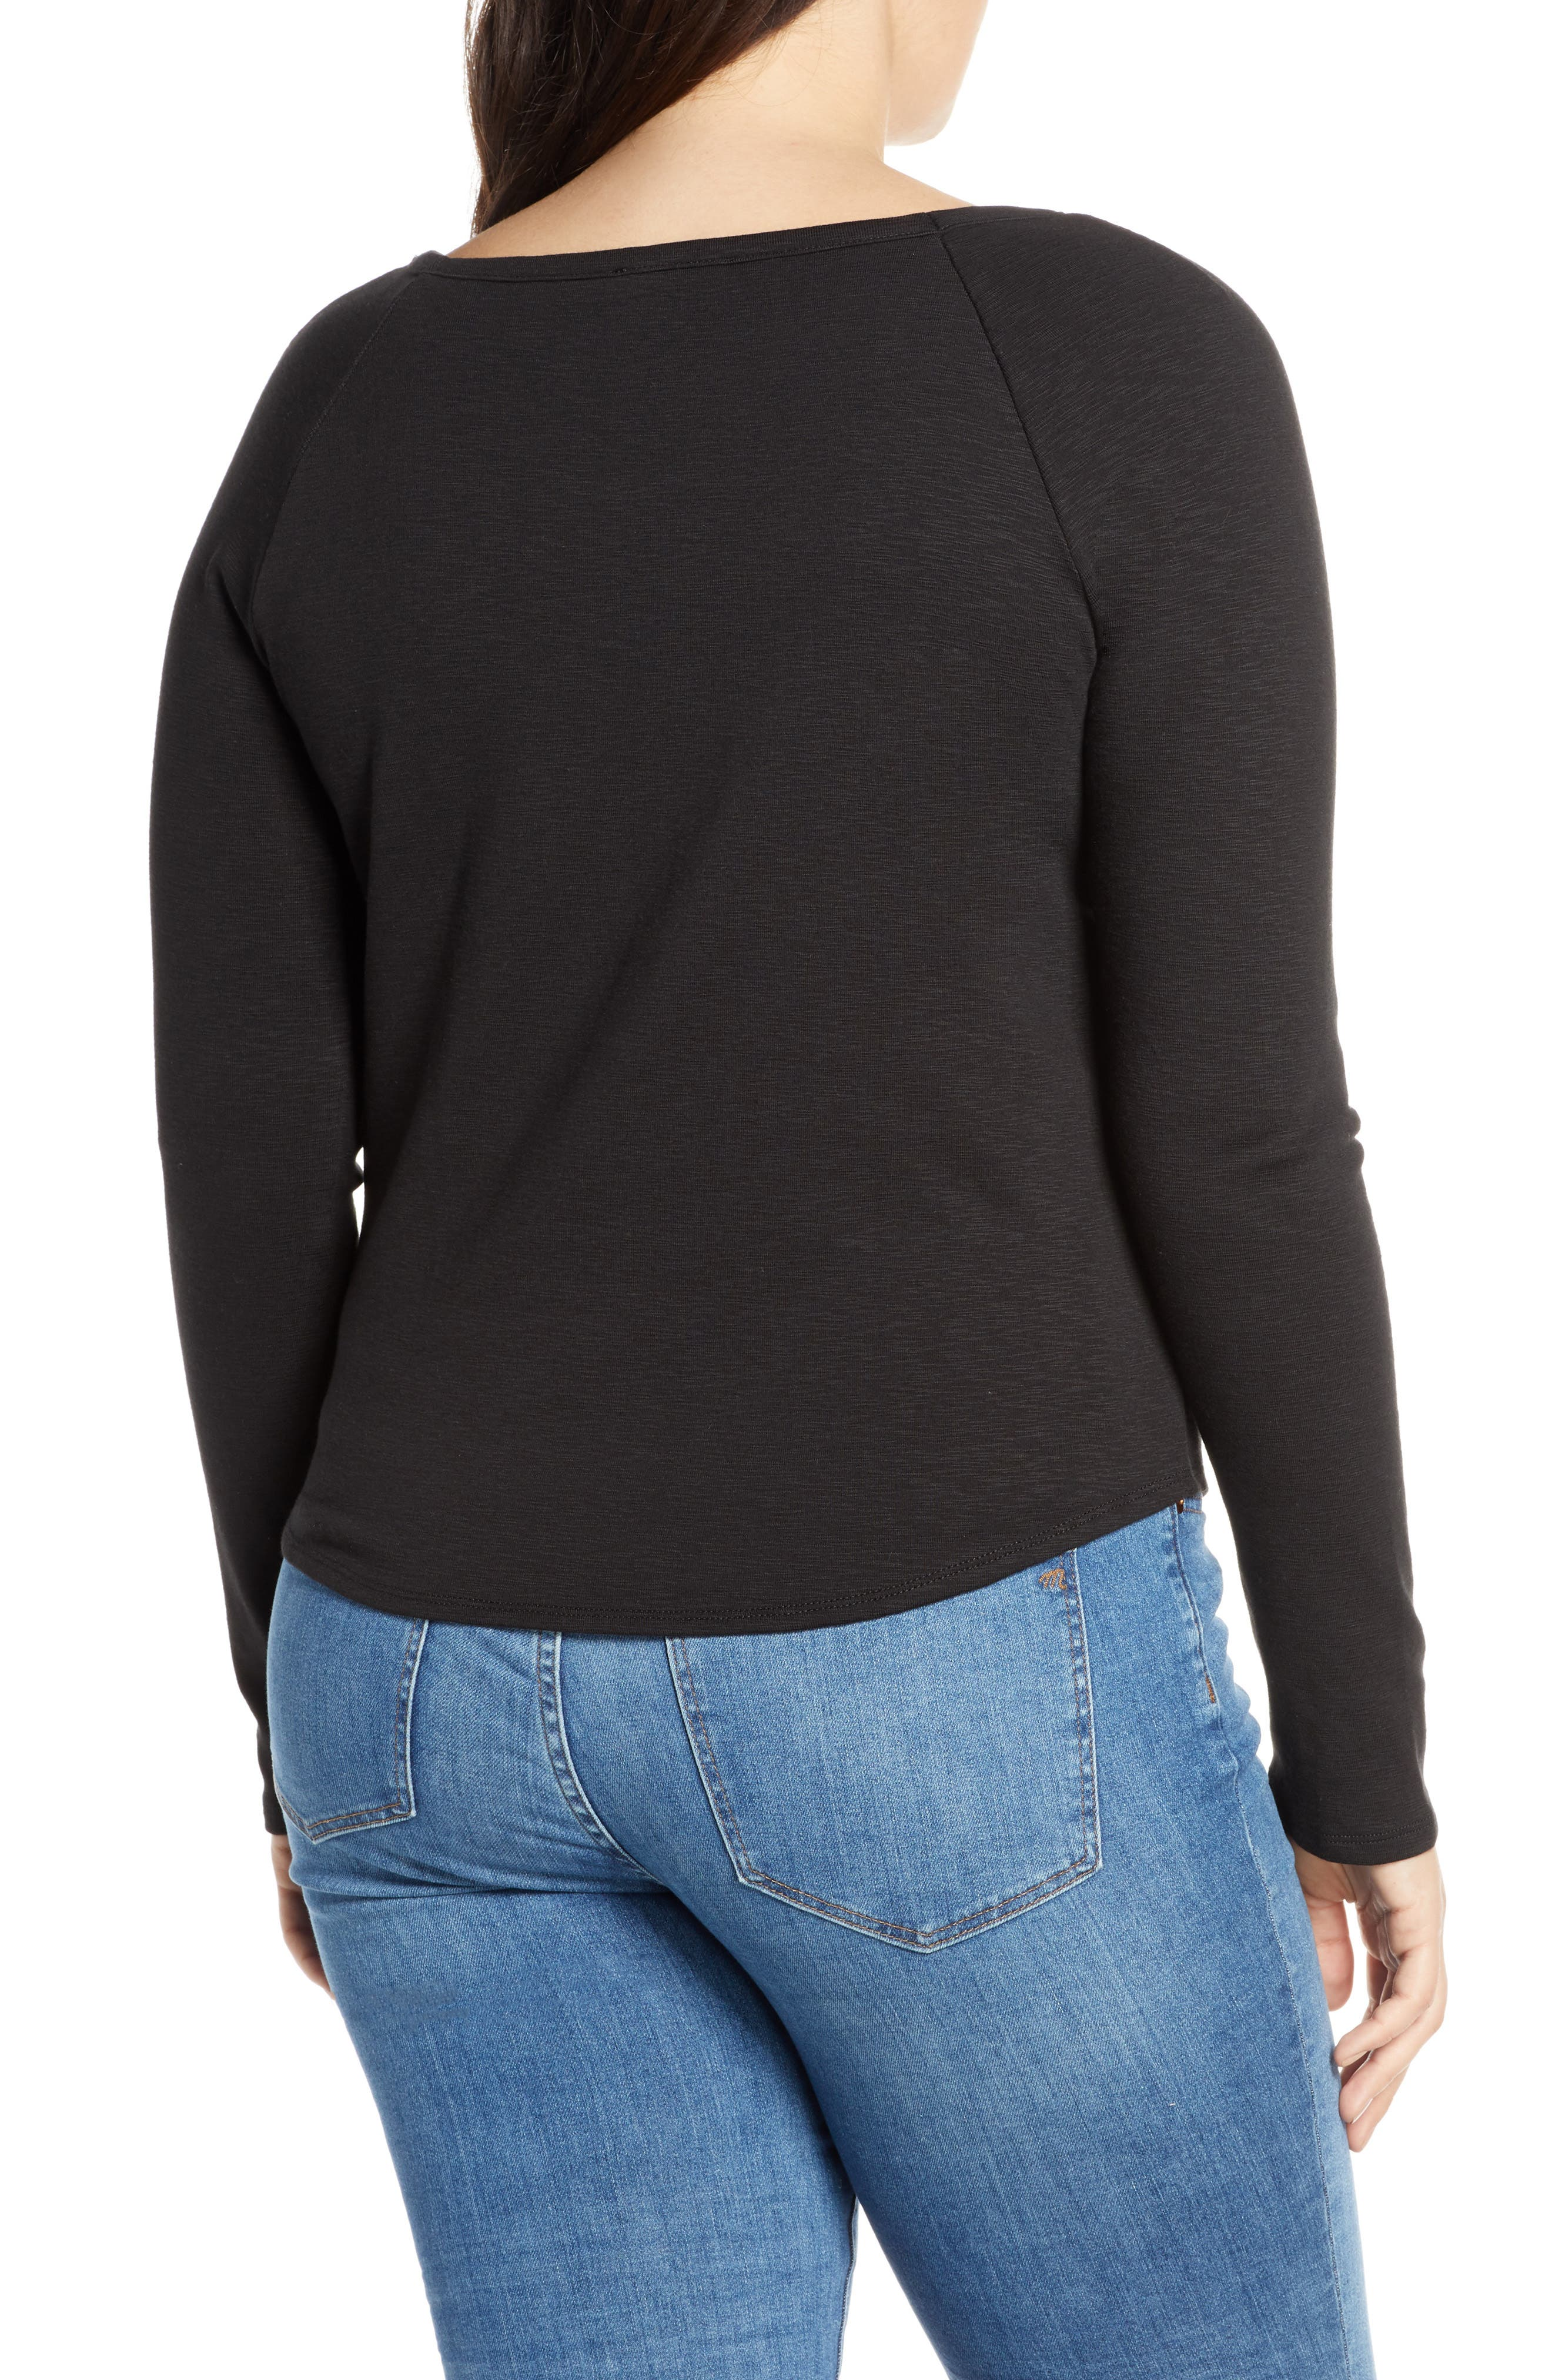 MADEWELL, Square Neck Long Sleeve Tee, Alternate thumbnail 7, color, TRUE BLACK